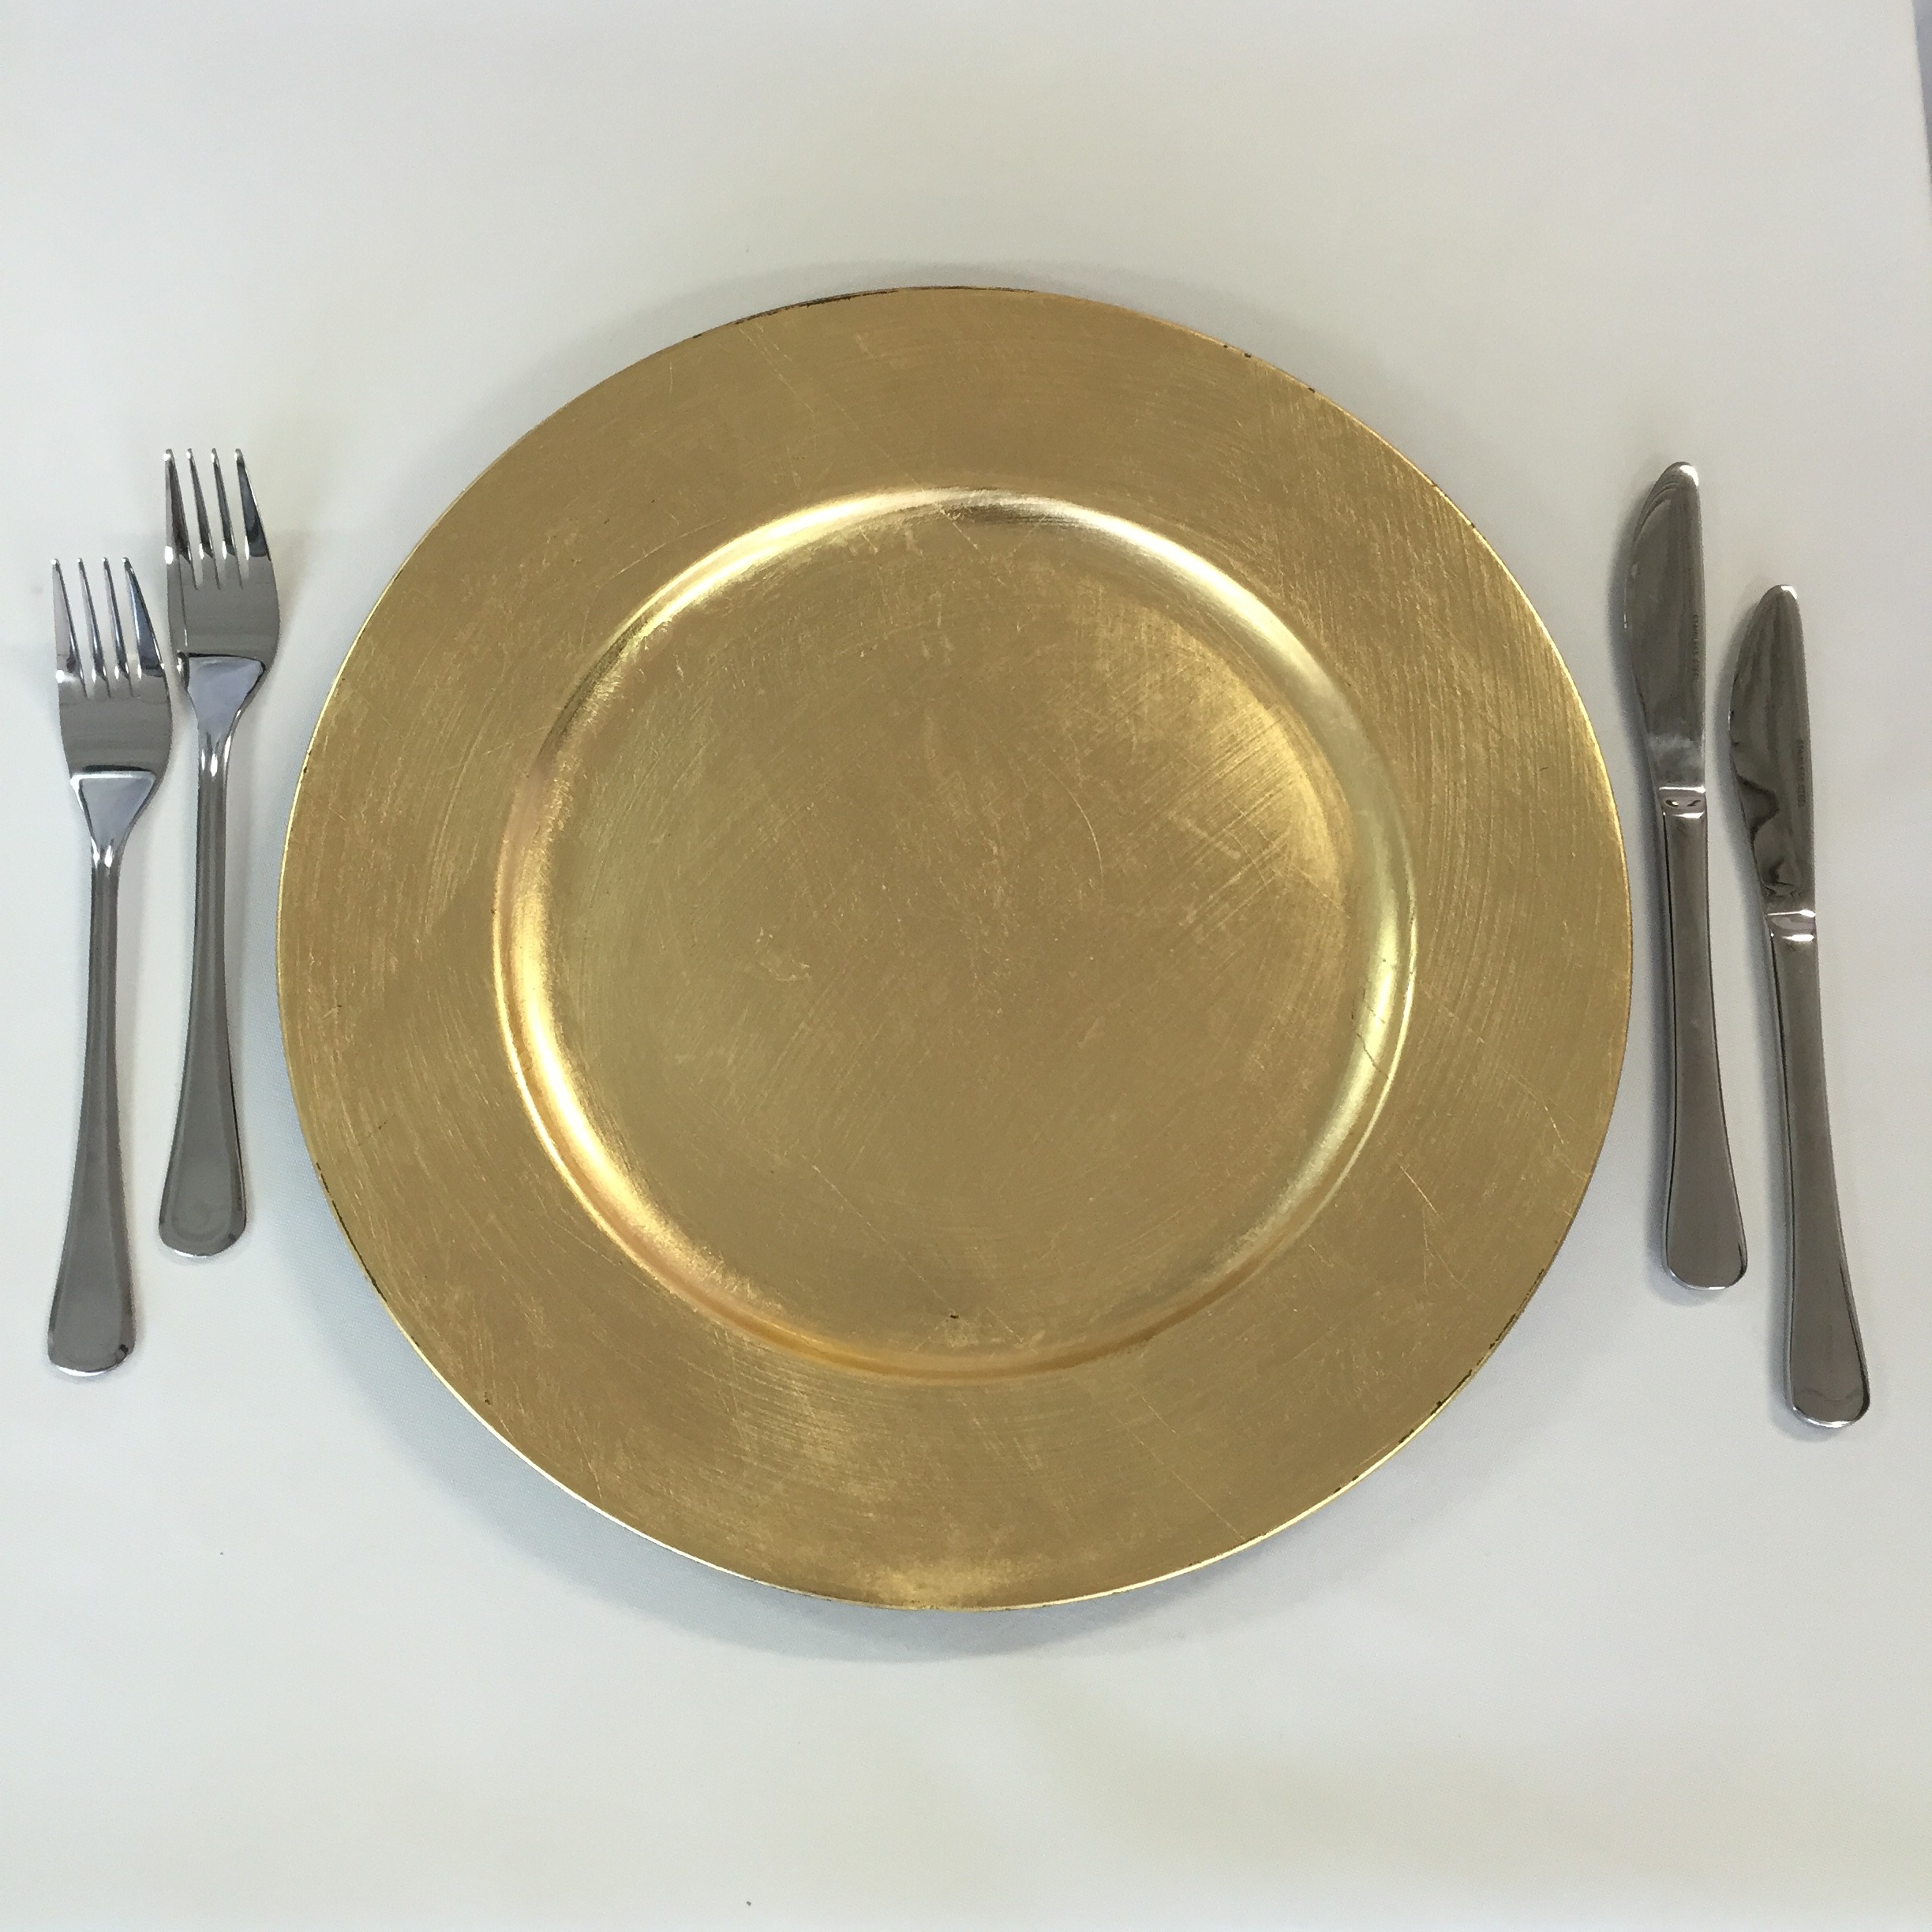 Gold acrylic charger plate harbourside decorators for Decor plates